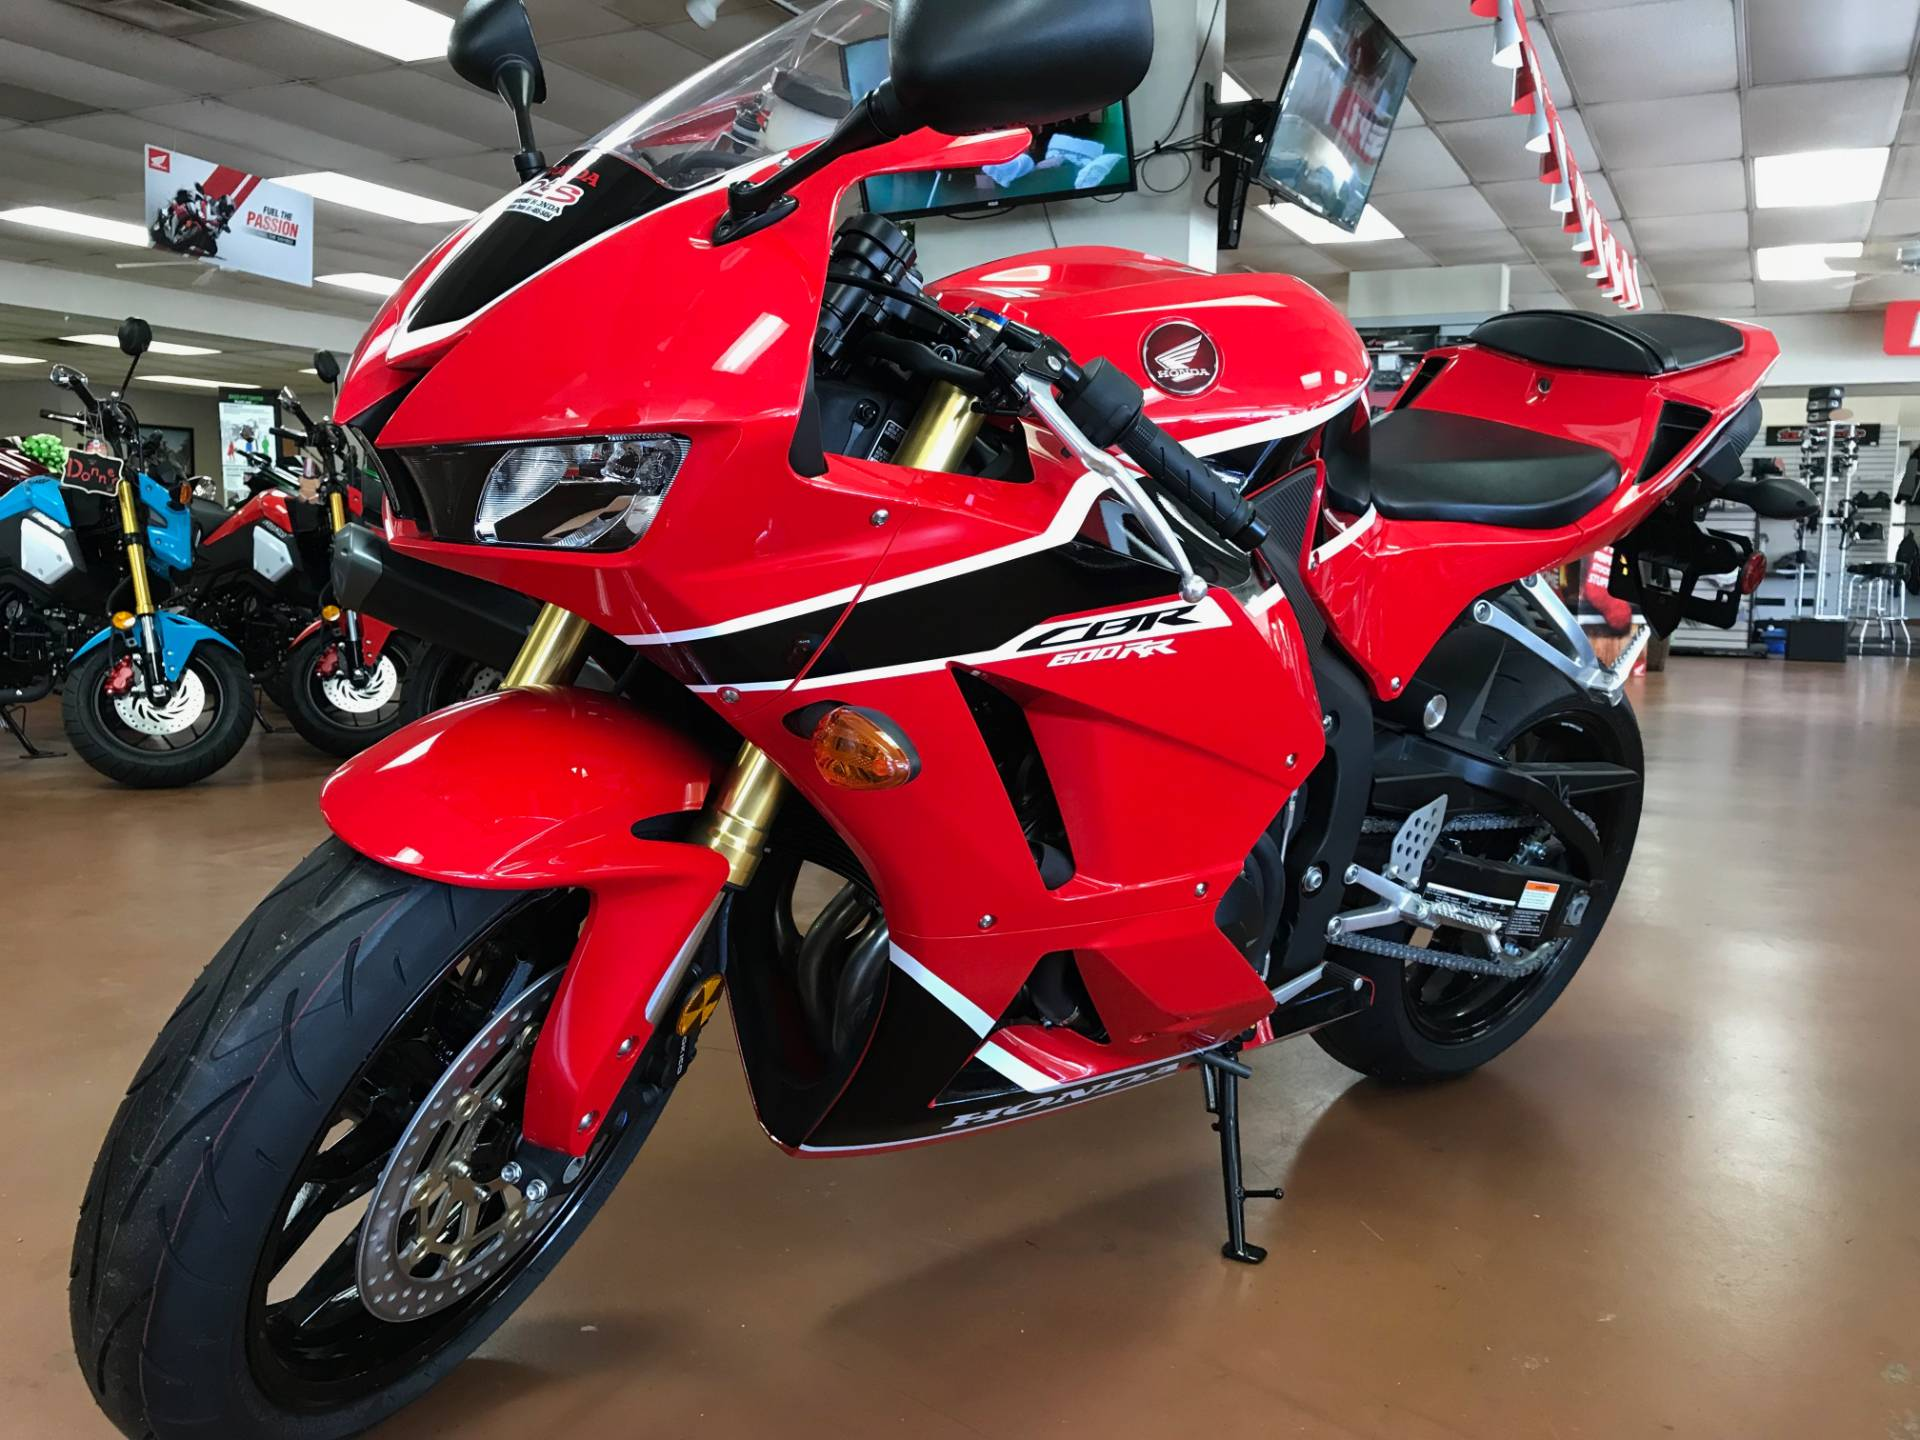 2017 Honda CBR600RR in Arlington, Texas - Photo 3